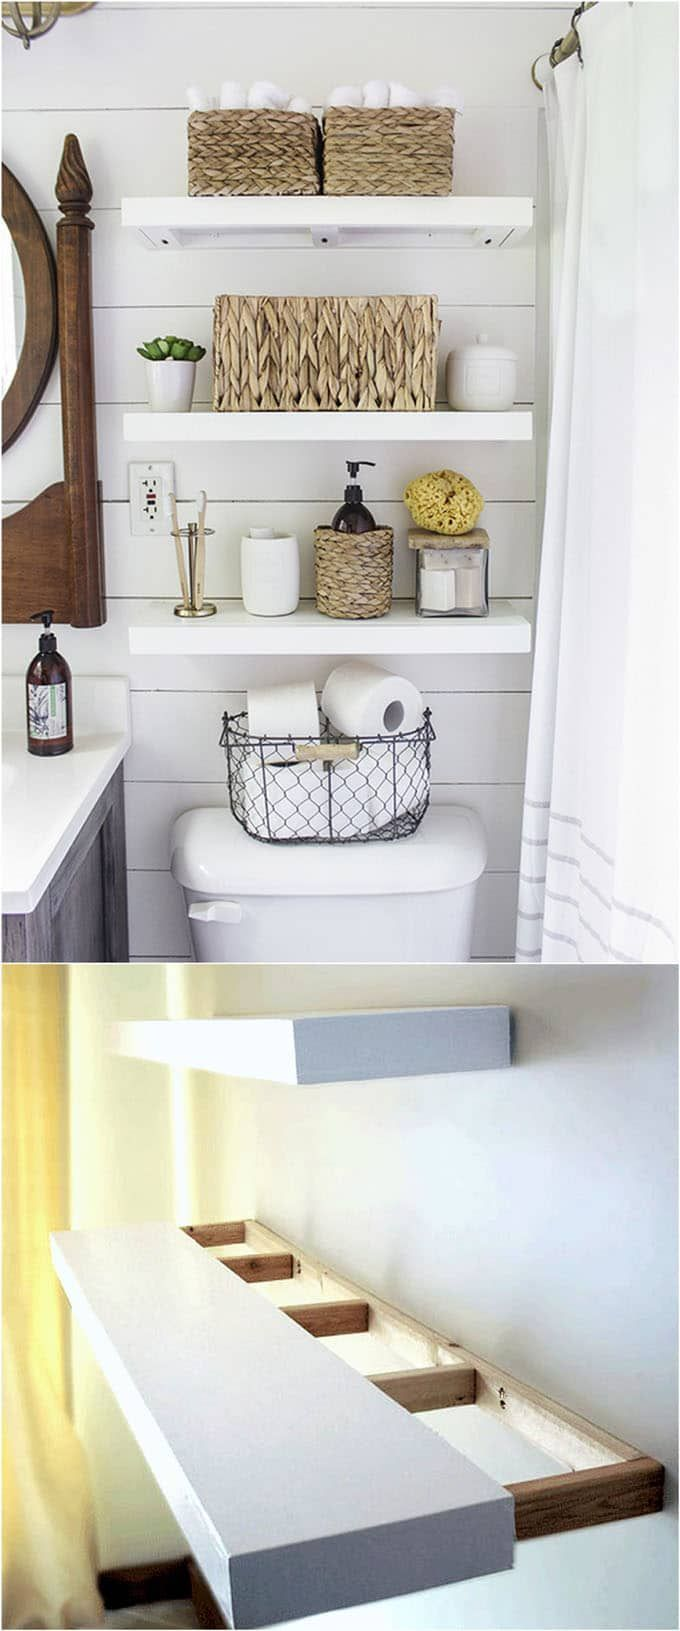 Best 25 basket bathroom storage ideas on pinterest - Bathroom storage baskets shelves ...